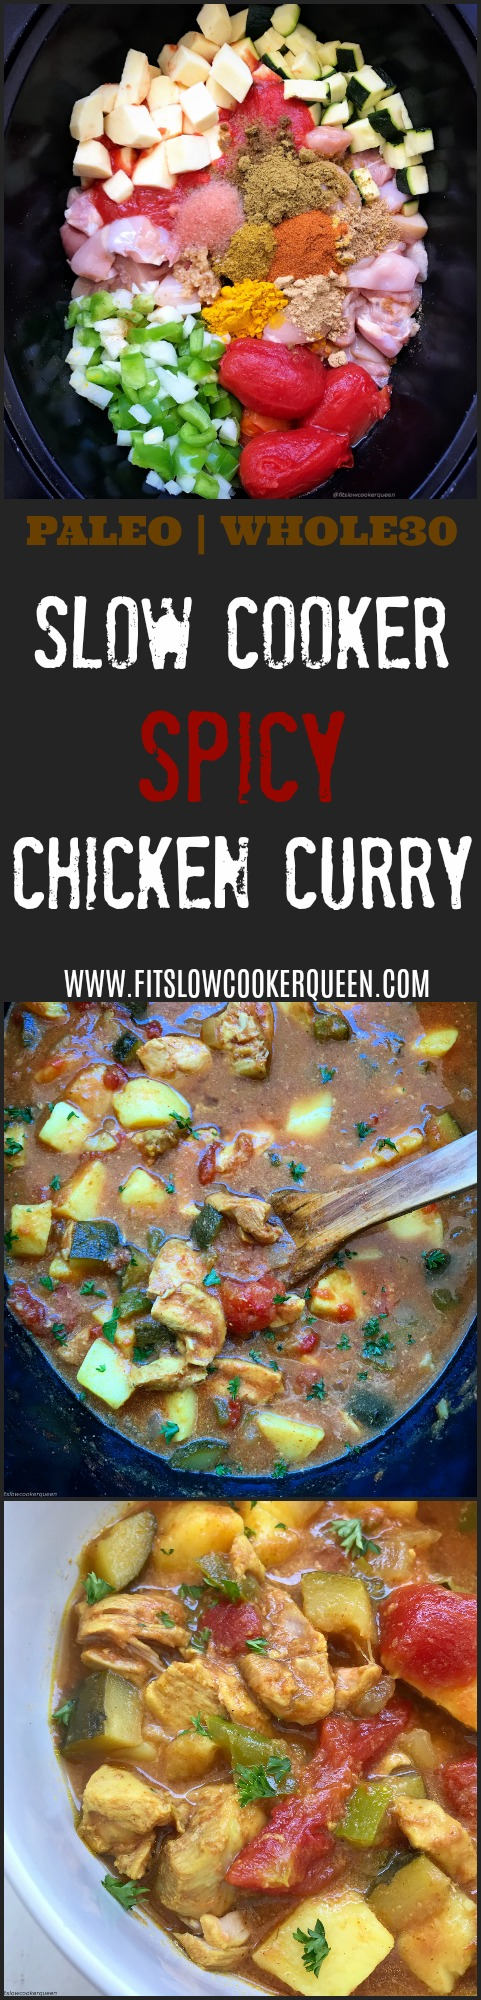 This Indian-flavored spicy chicken curry is not just an aromatic and flavorful dish, it is also paleo, whole30 compliant, and super easy to make. Sit back and let your slow cooker create a delicious curry.